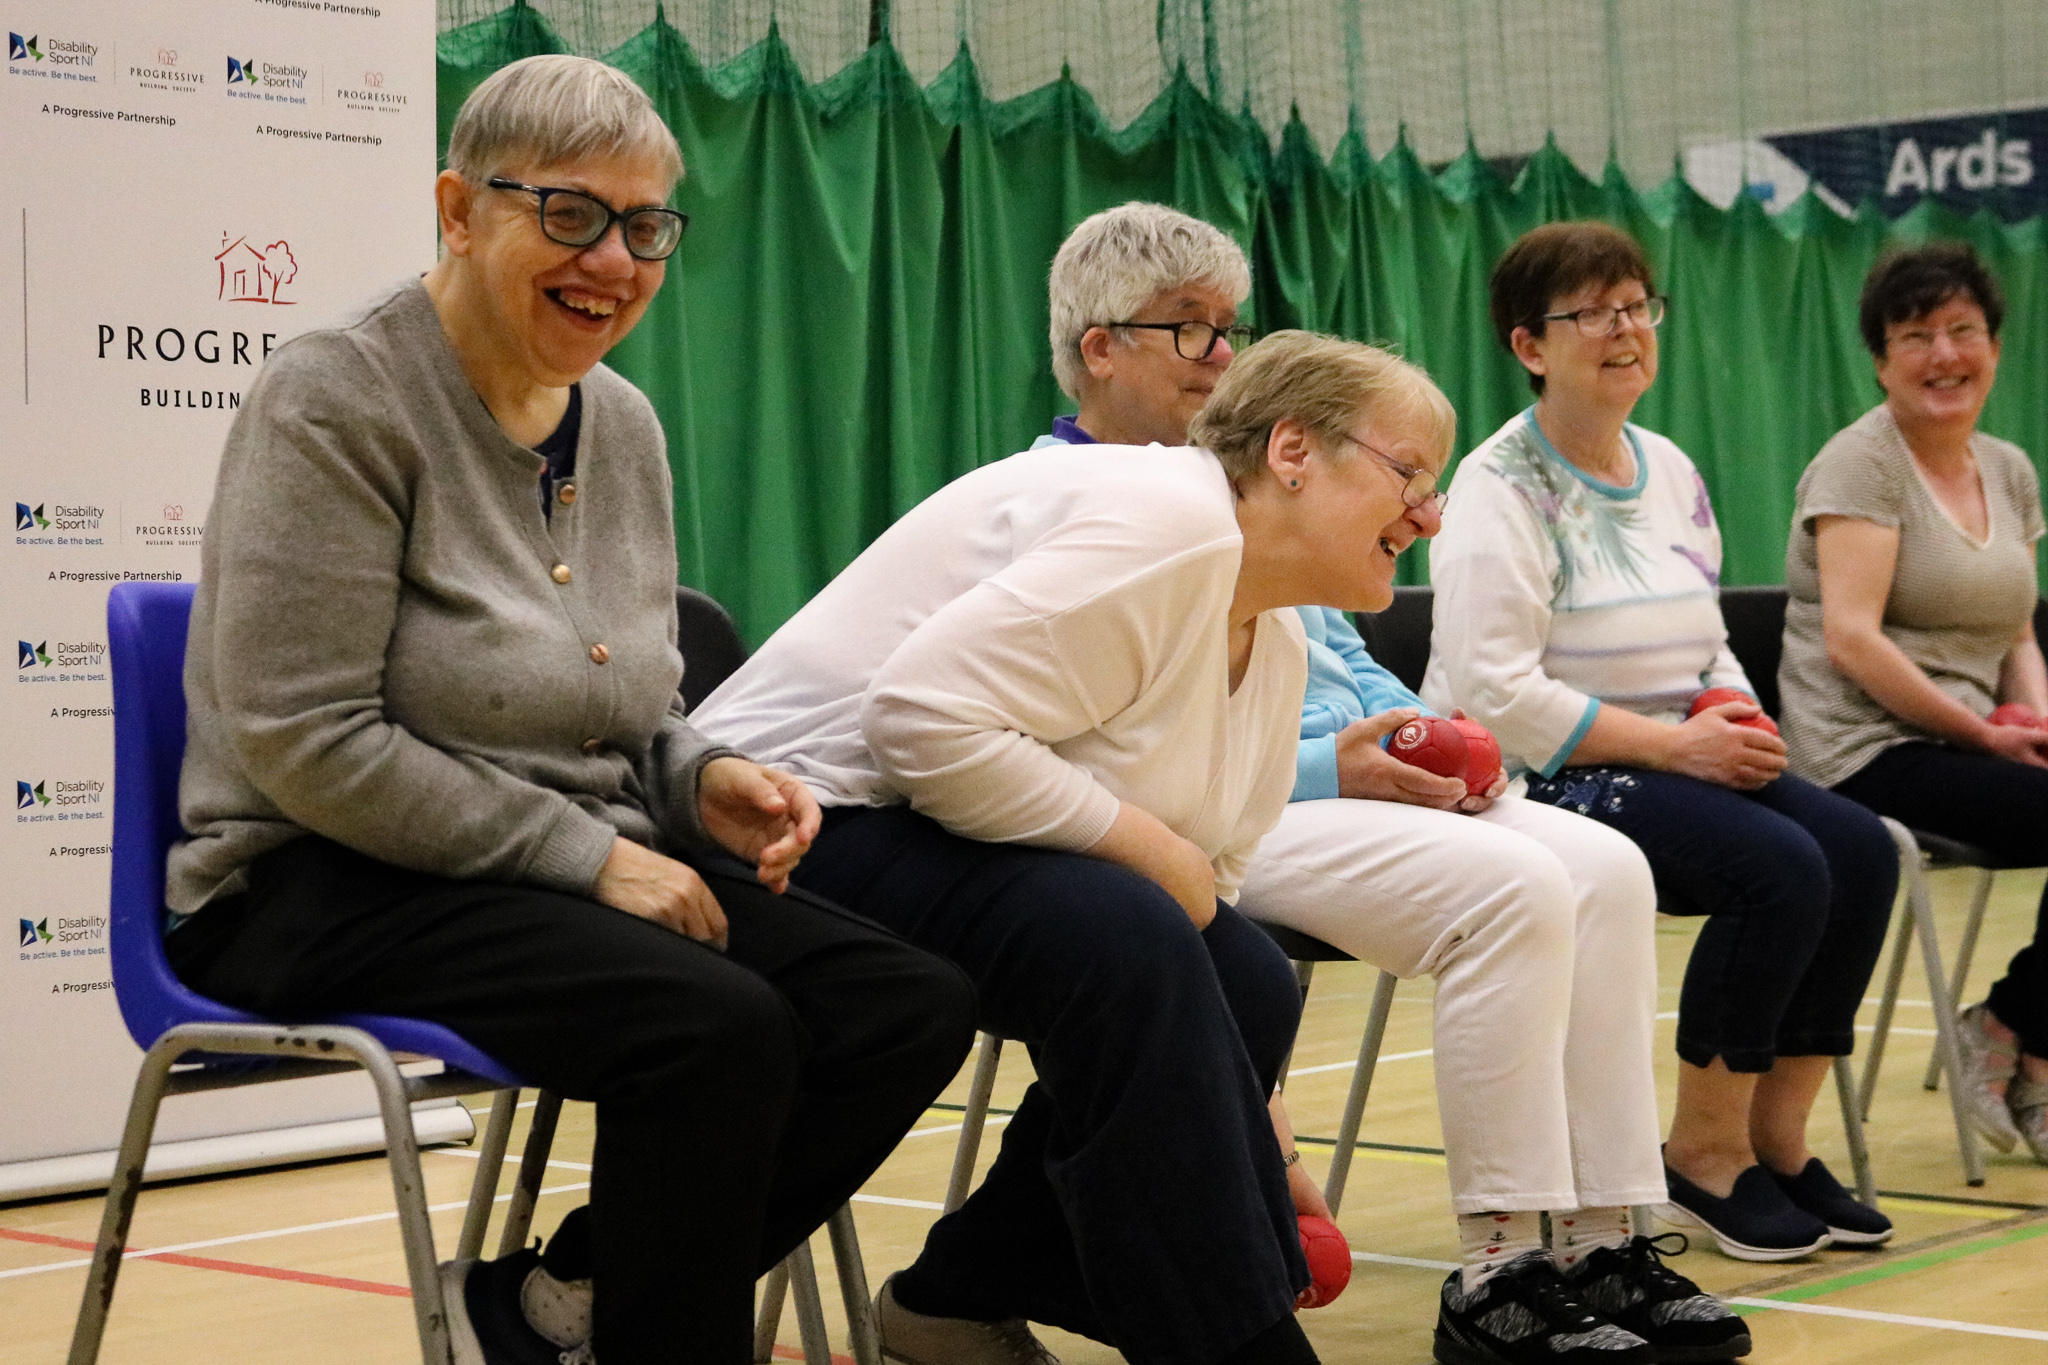 An image of a group playing boccia